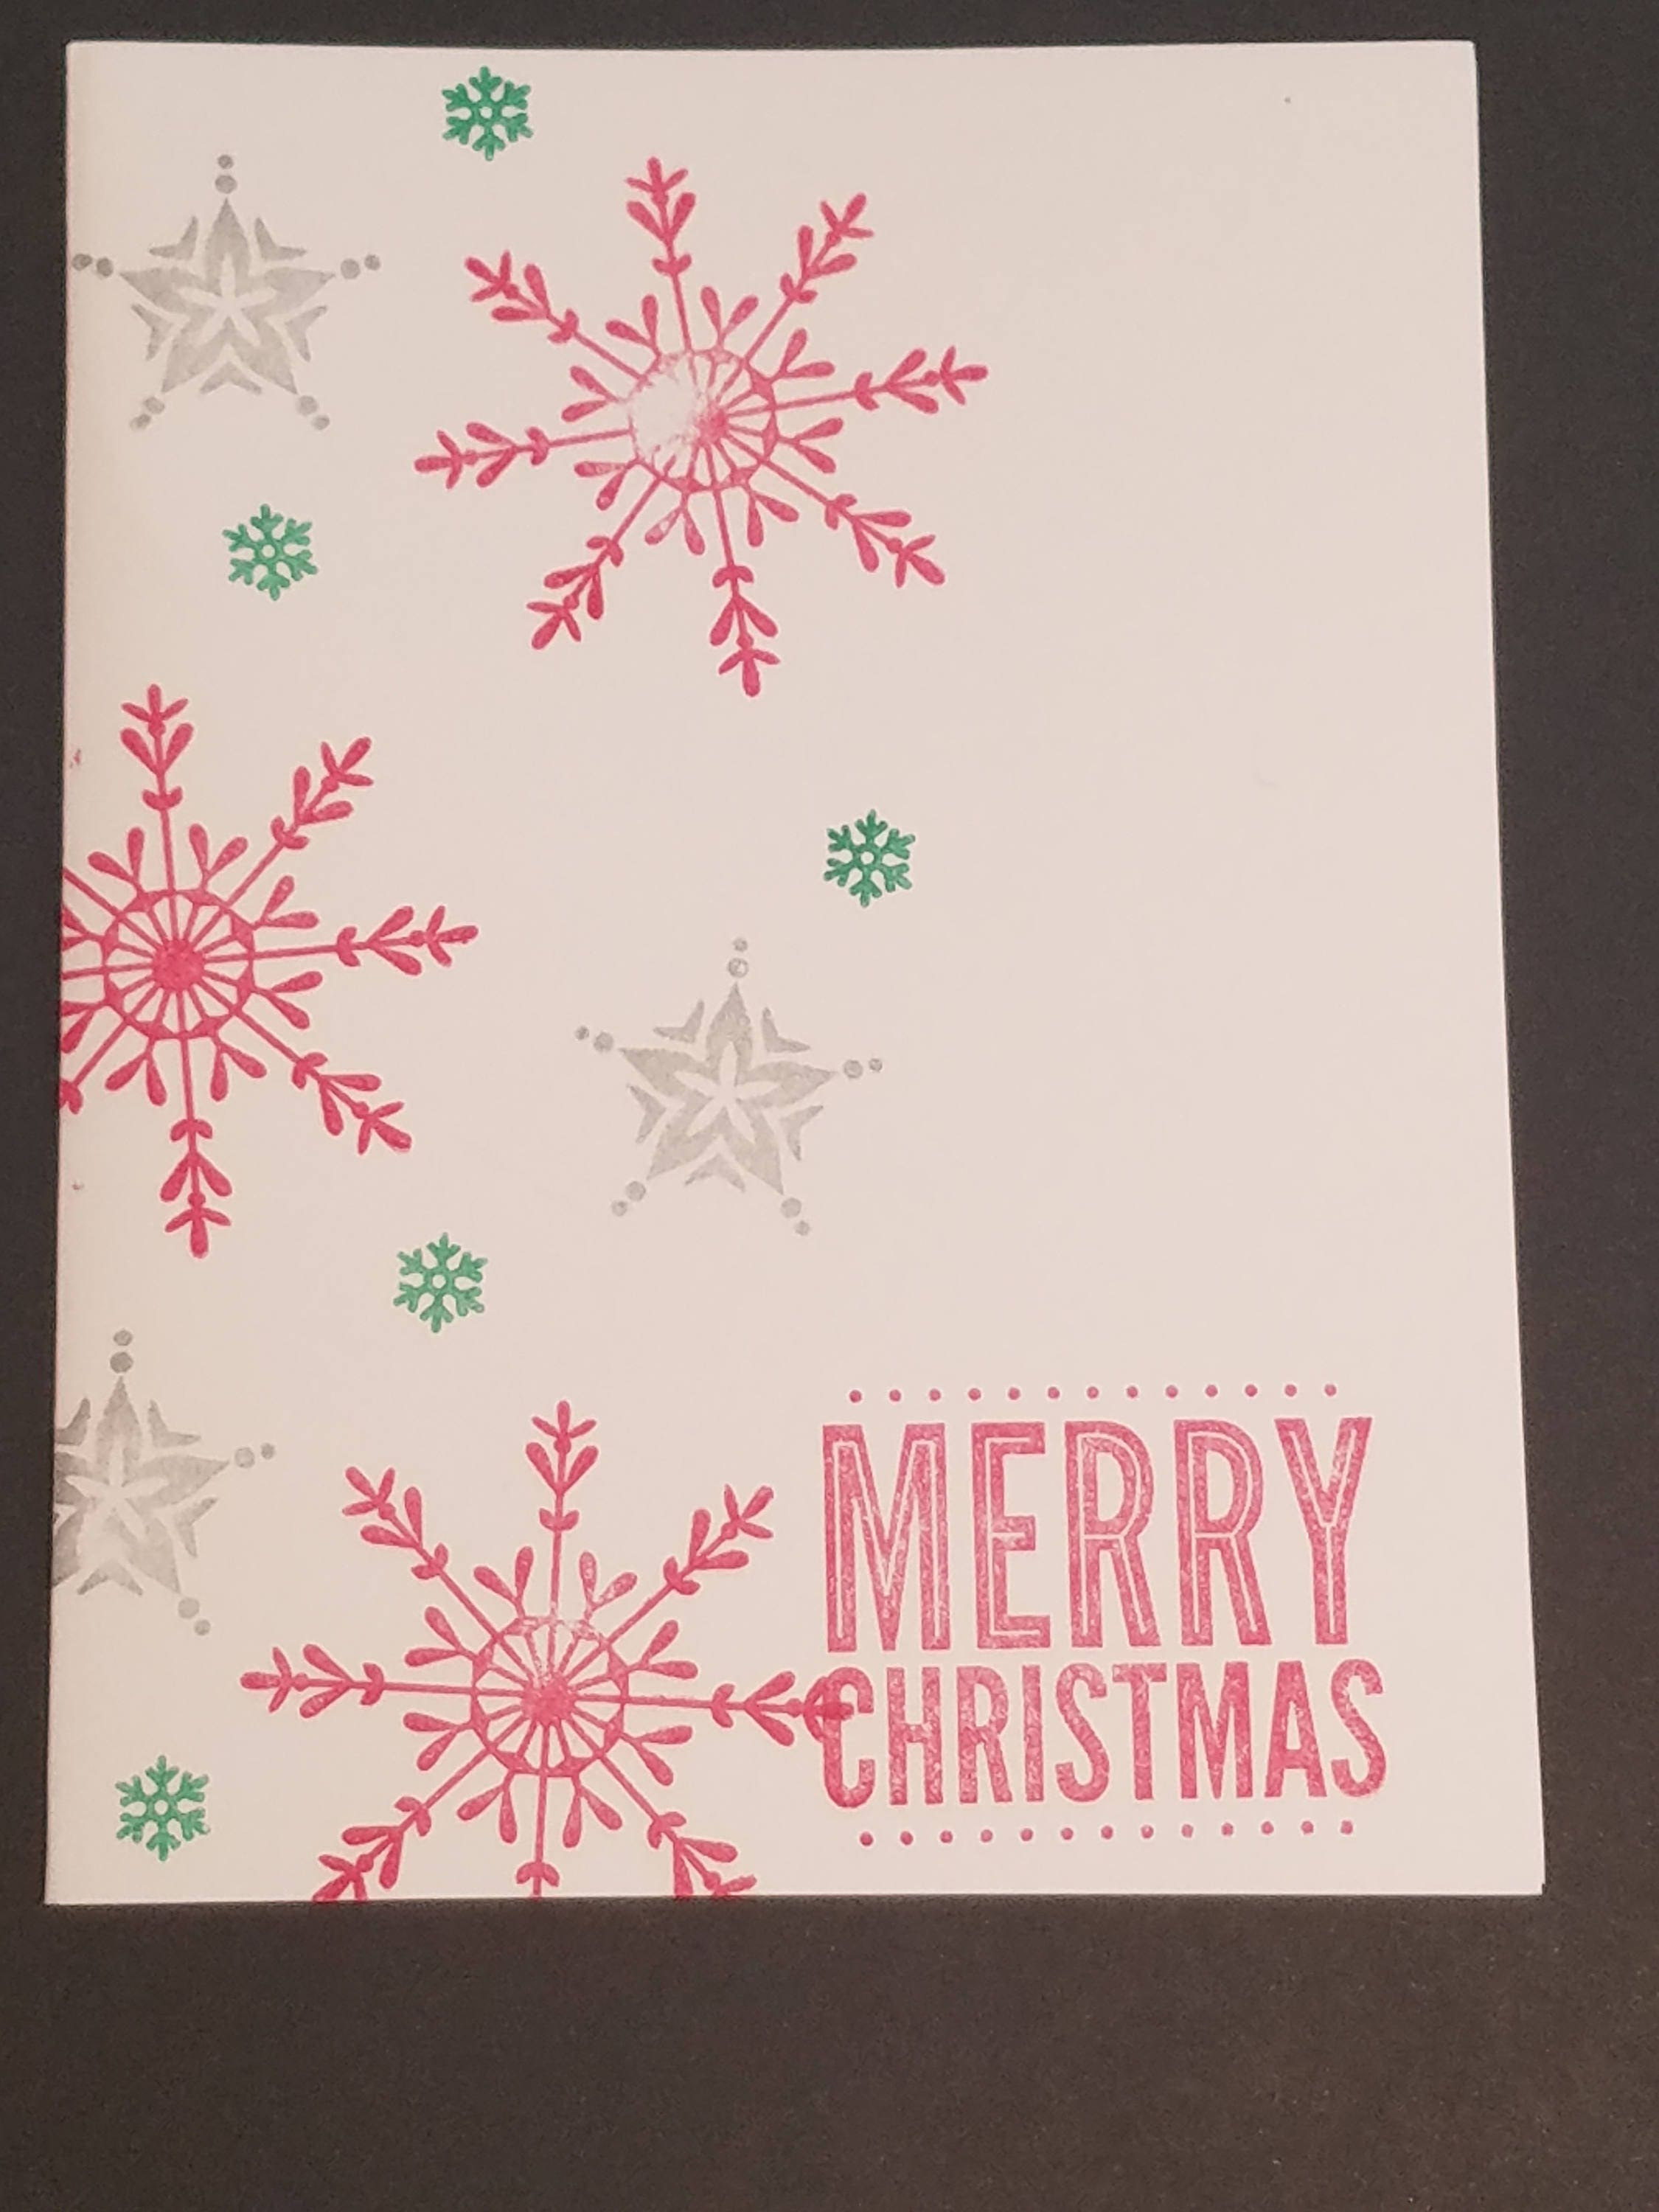 Christmas card christmas wishes christmas card greetings christmas card christmas wishes christmas card greetings holiday cards homemade christmas card kristyandbryce Choice Image